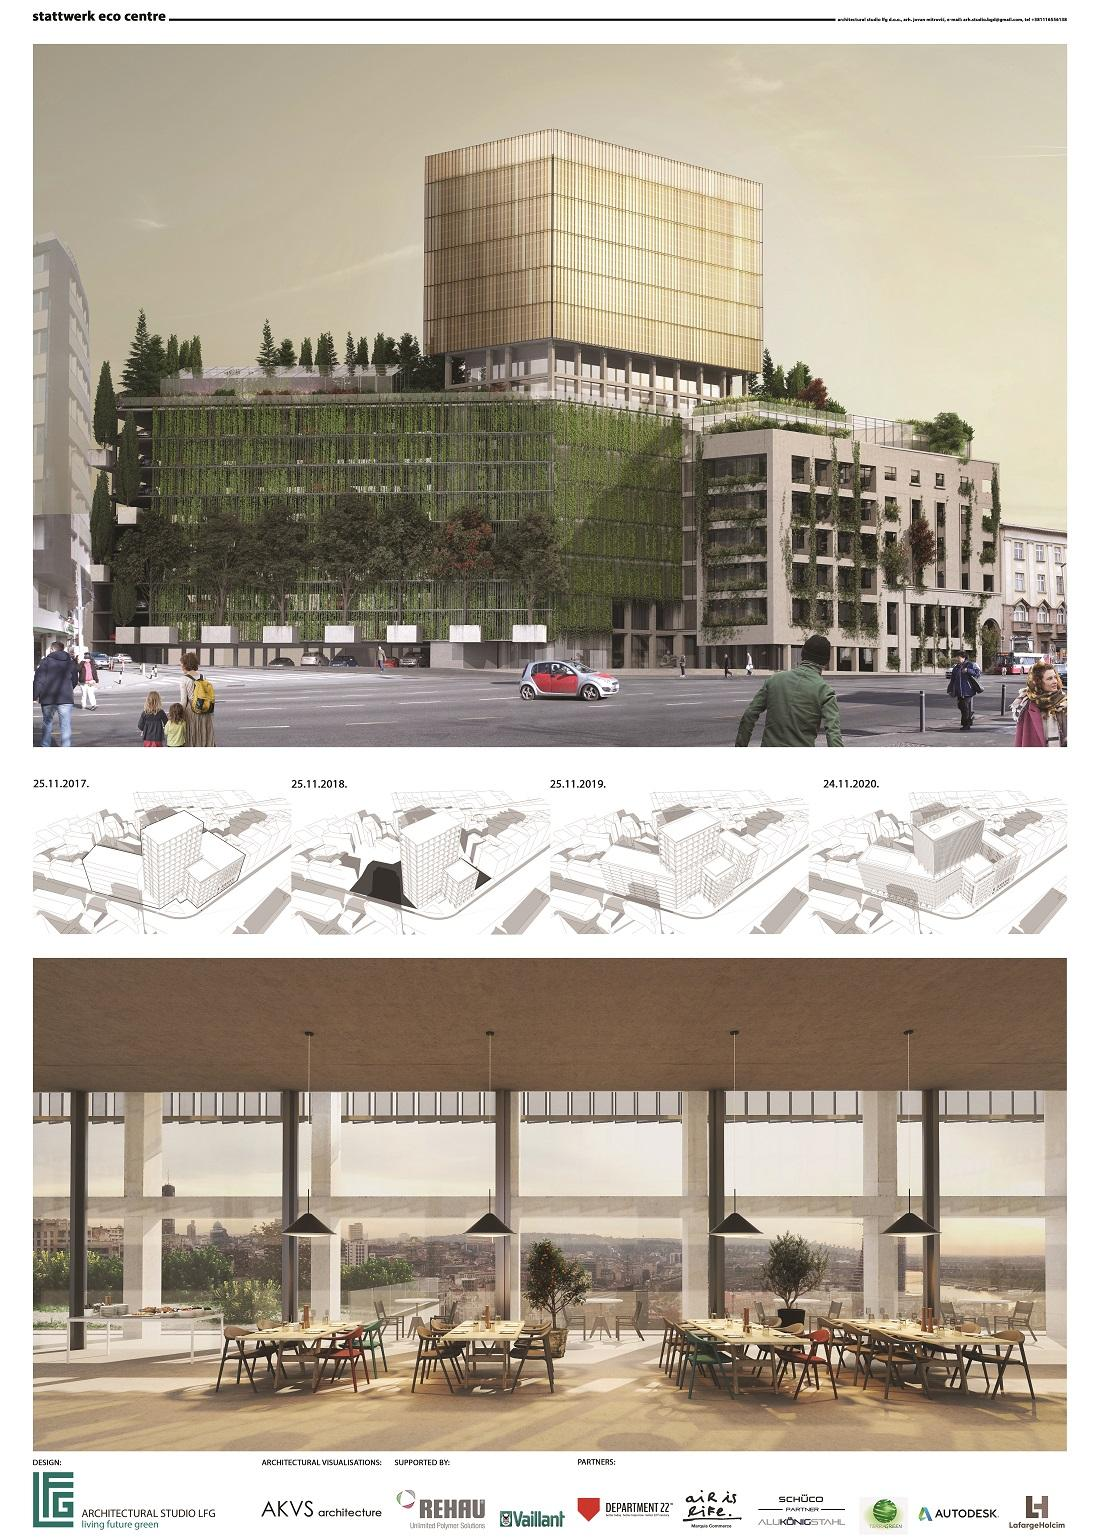 1st-prize-architectural-competition.jpg